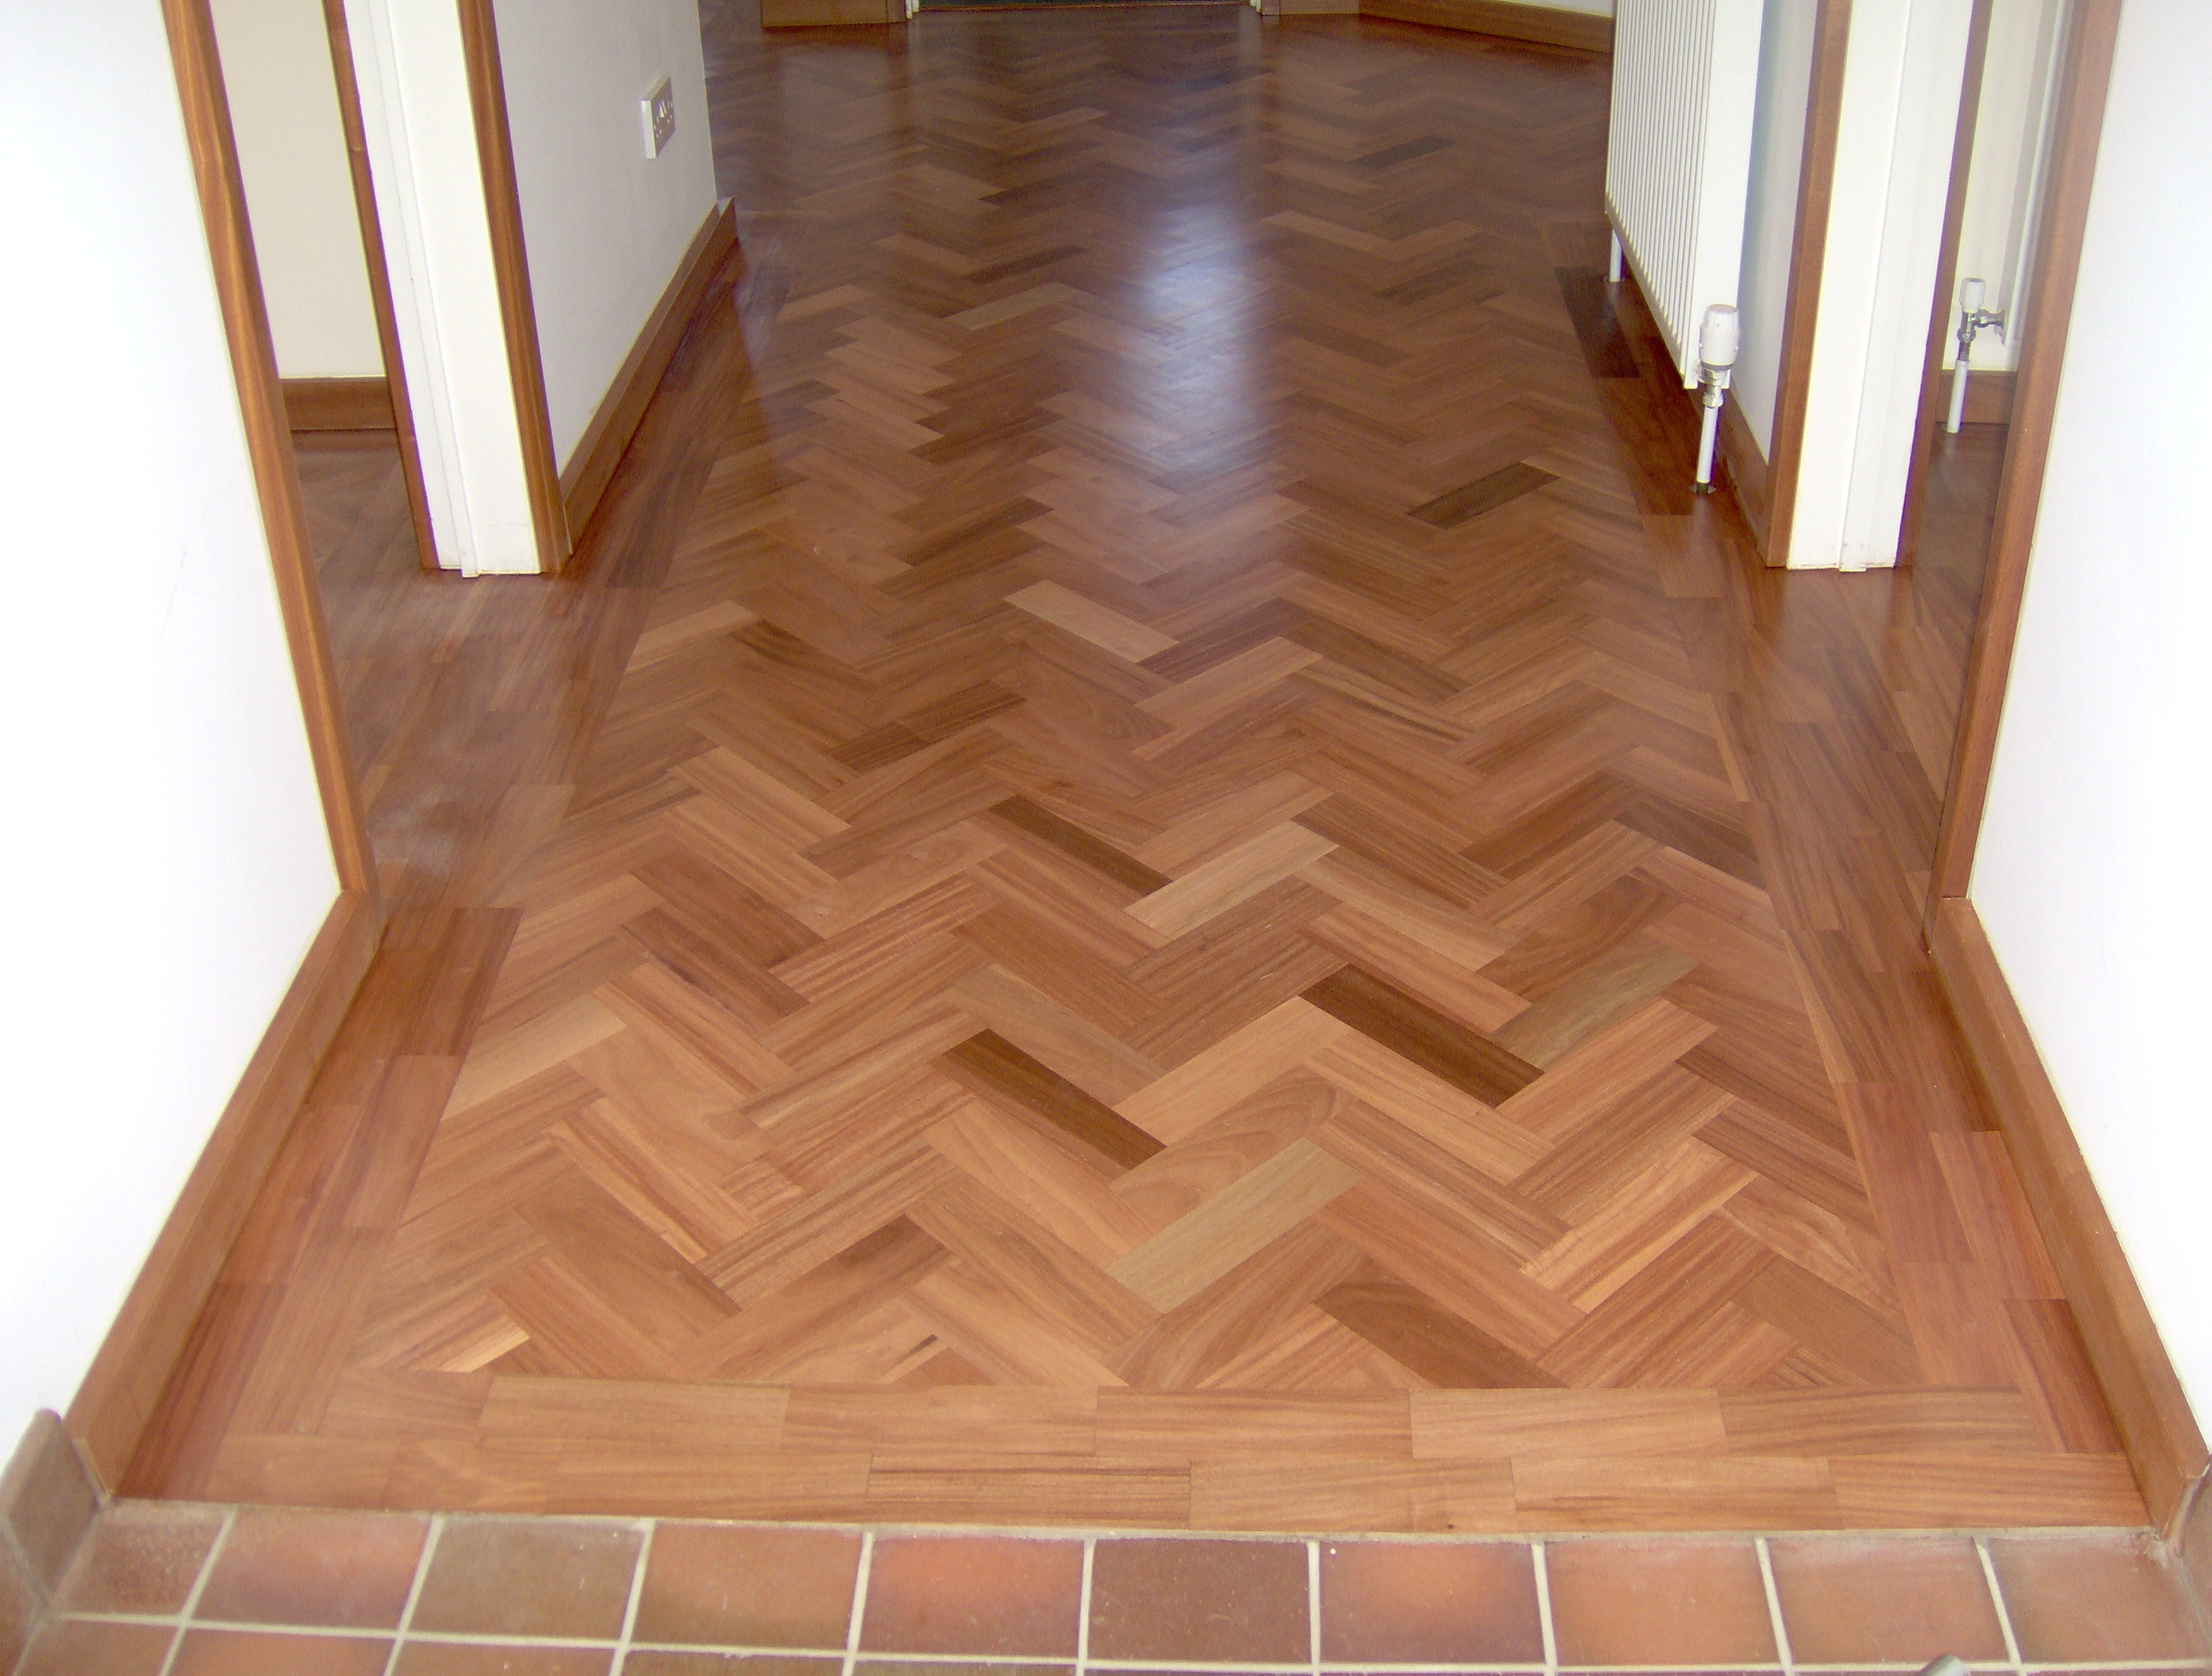 Wooden floorings interior exterior solutionsinterior for Parquet hardwood flooring